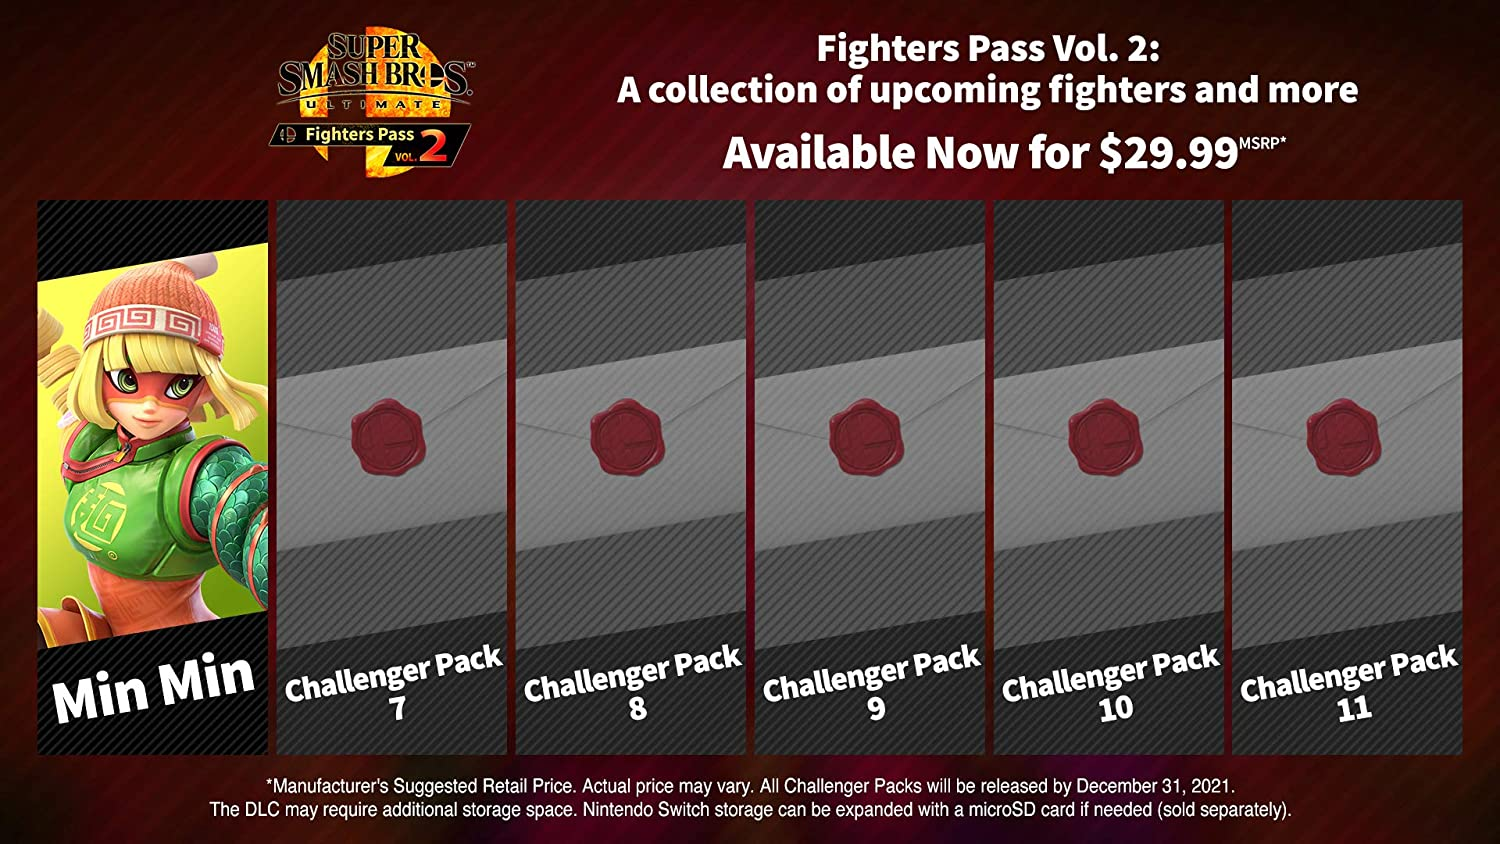 Amazon.com: Super Smash Bros. Ultimate - Fighters Pass Vol. 2 - Switch [Digital Code]: Video Games